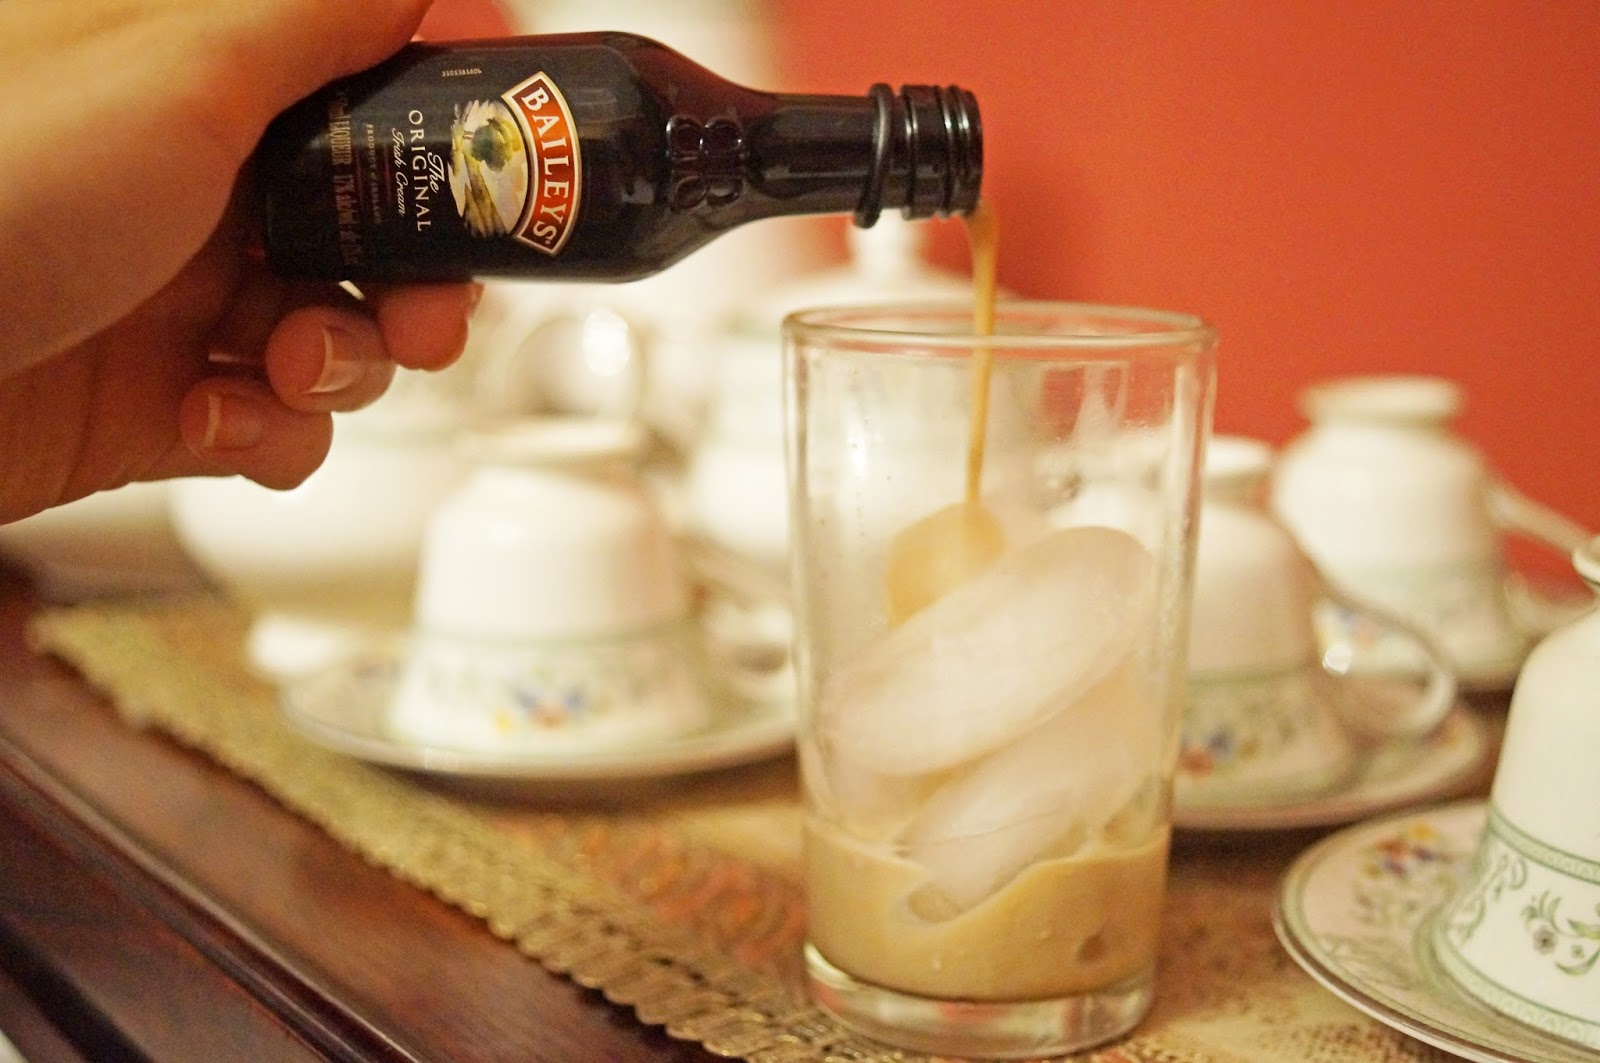 Treat yourself to some delicious Baileys irish liquor!